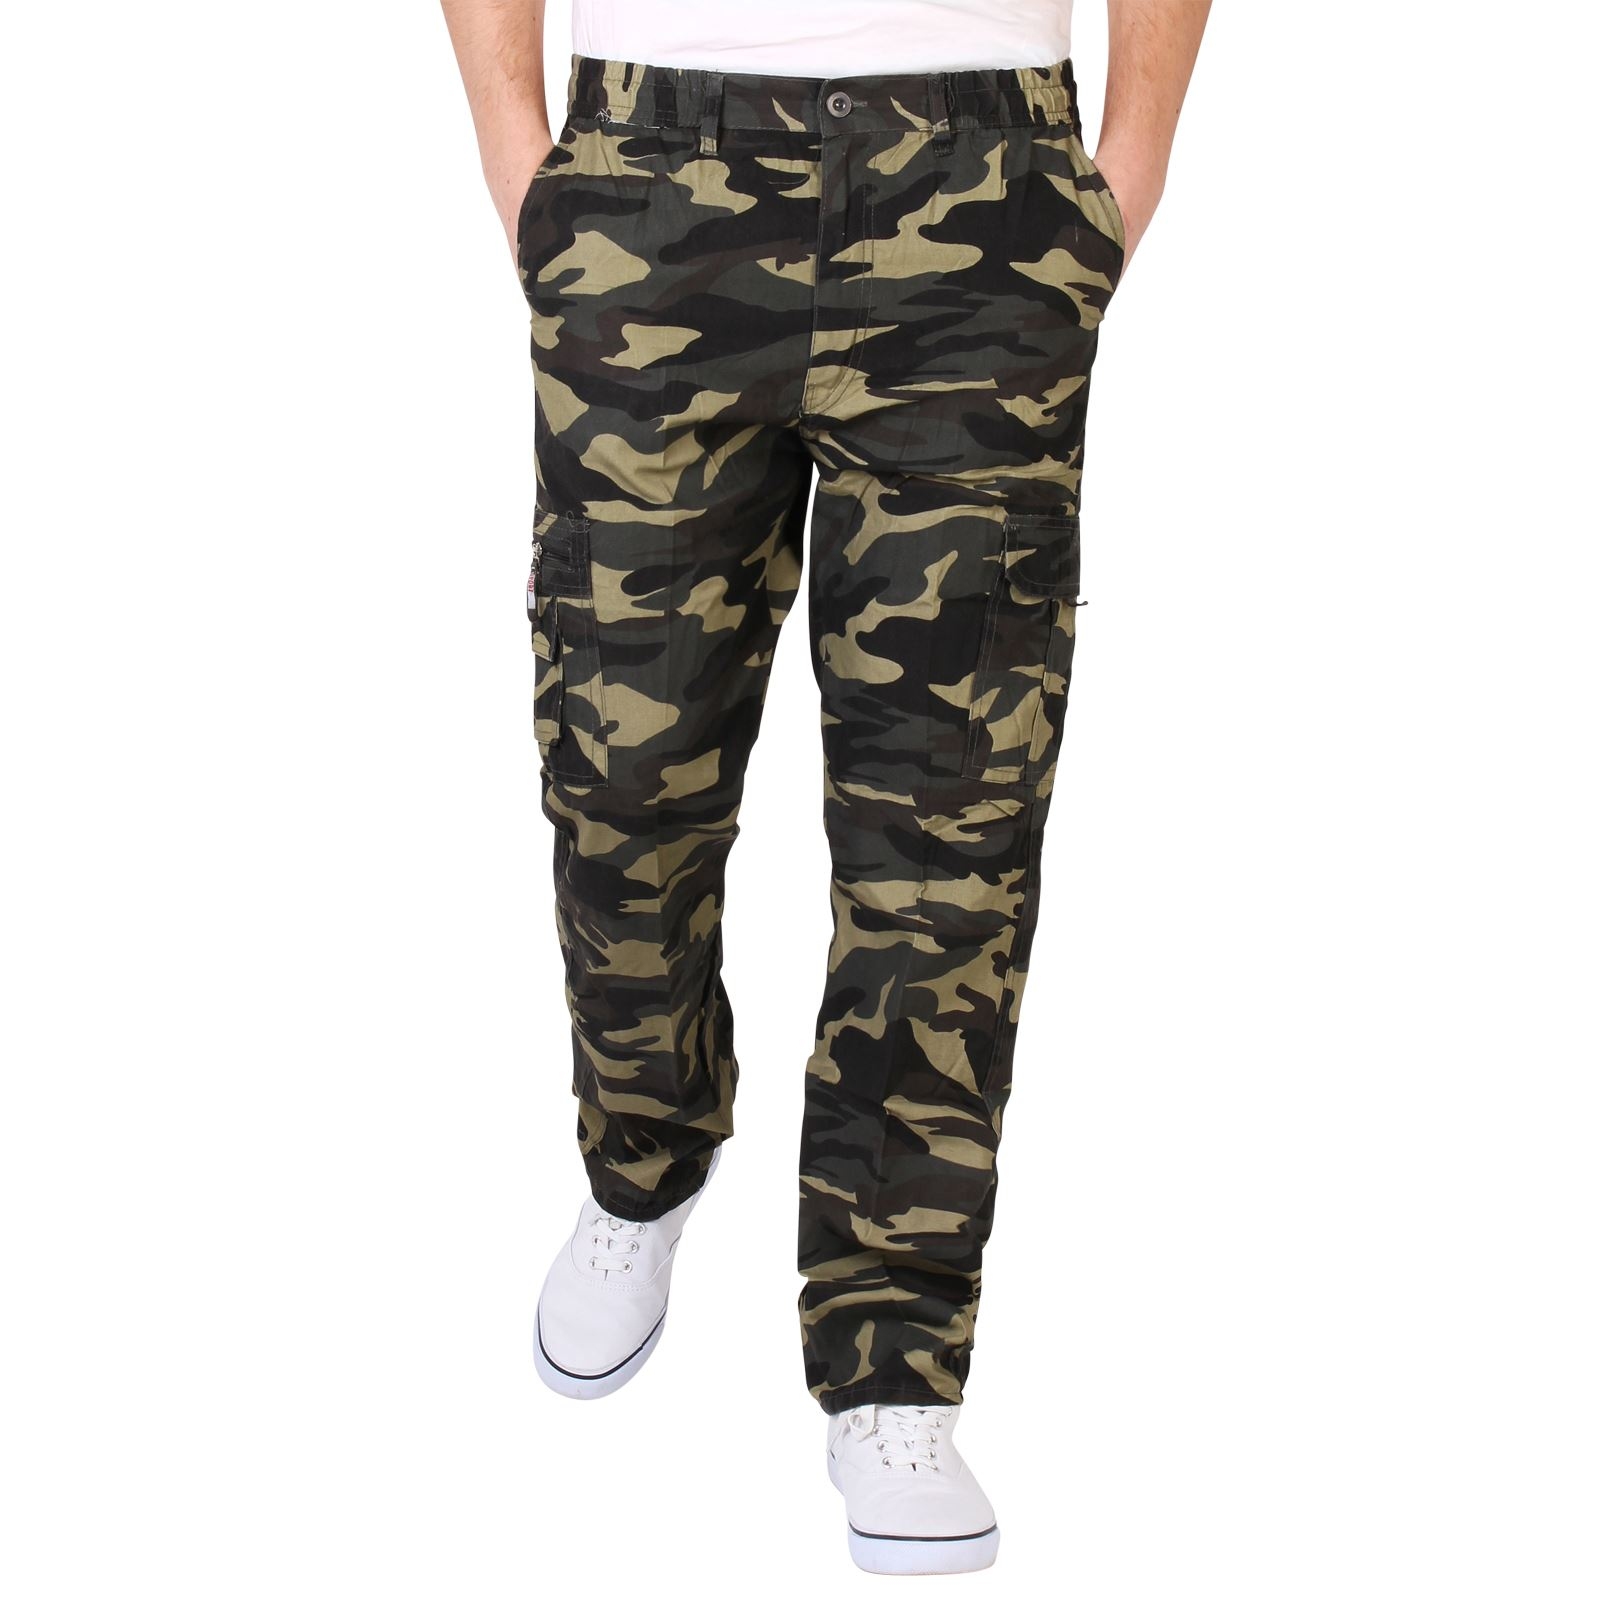 mens combat military army camouflage cargo trousers pants. Black Bedroom Furniture Sets. Home Design Ideas